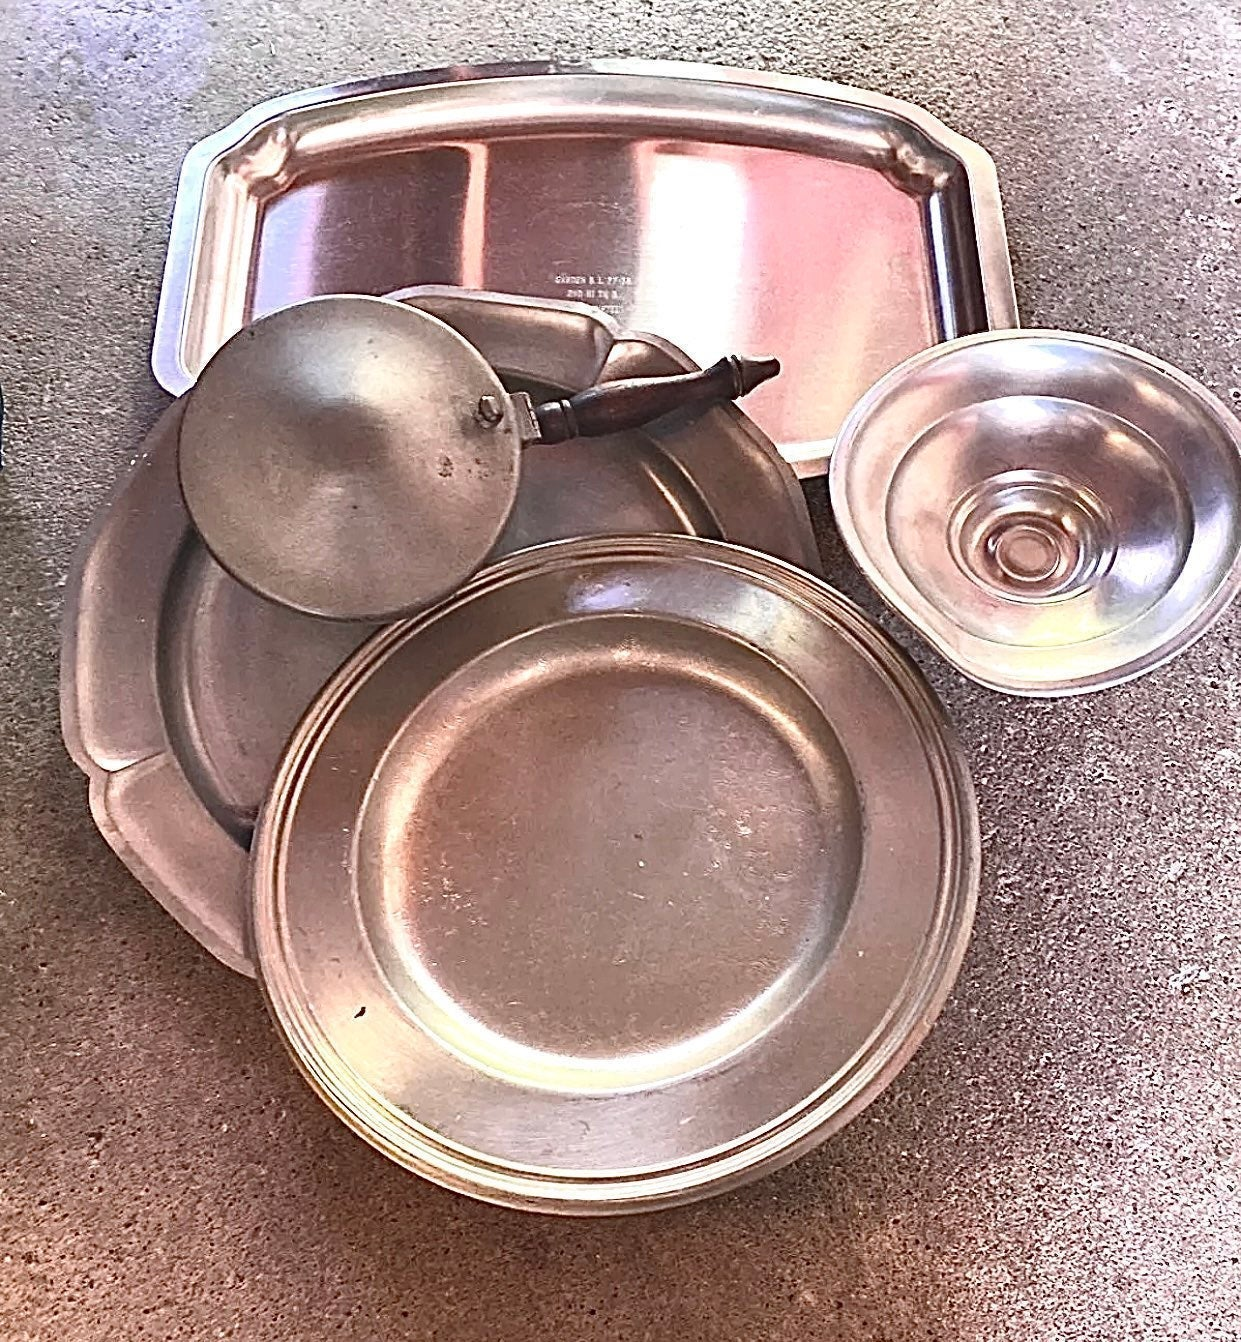 Serving dining pieces made wirh silver